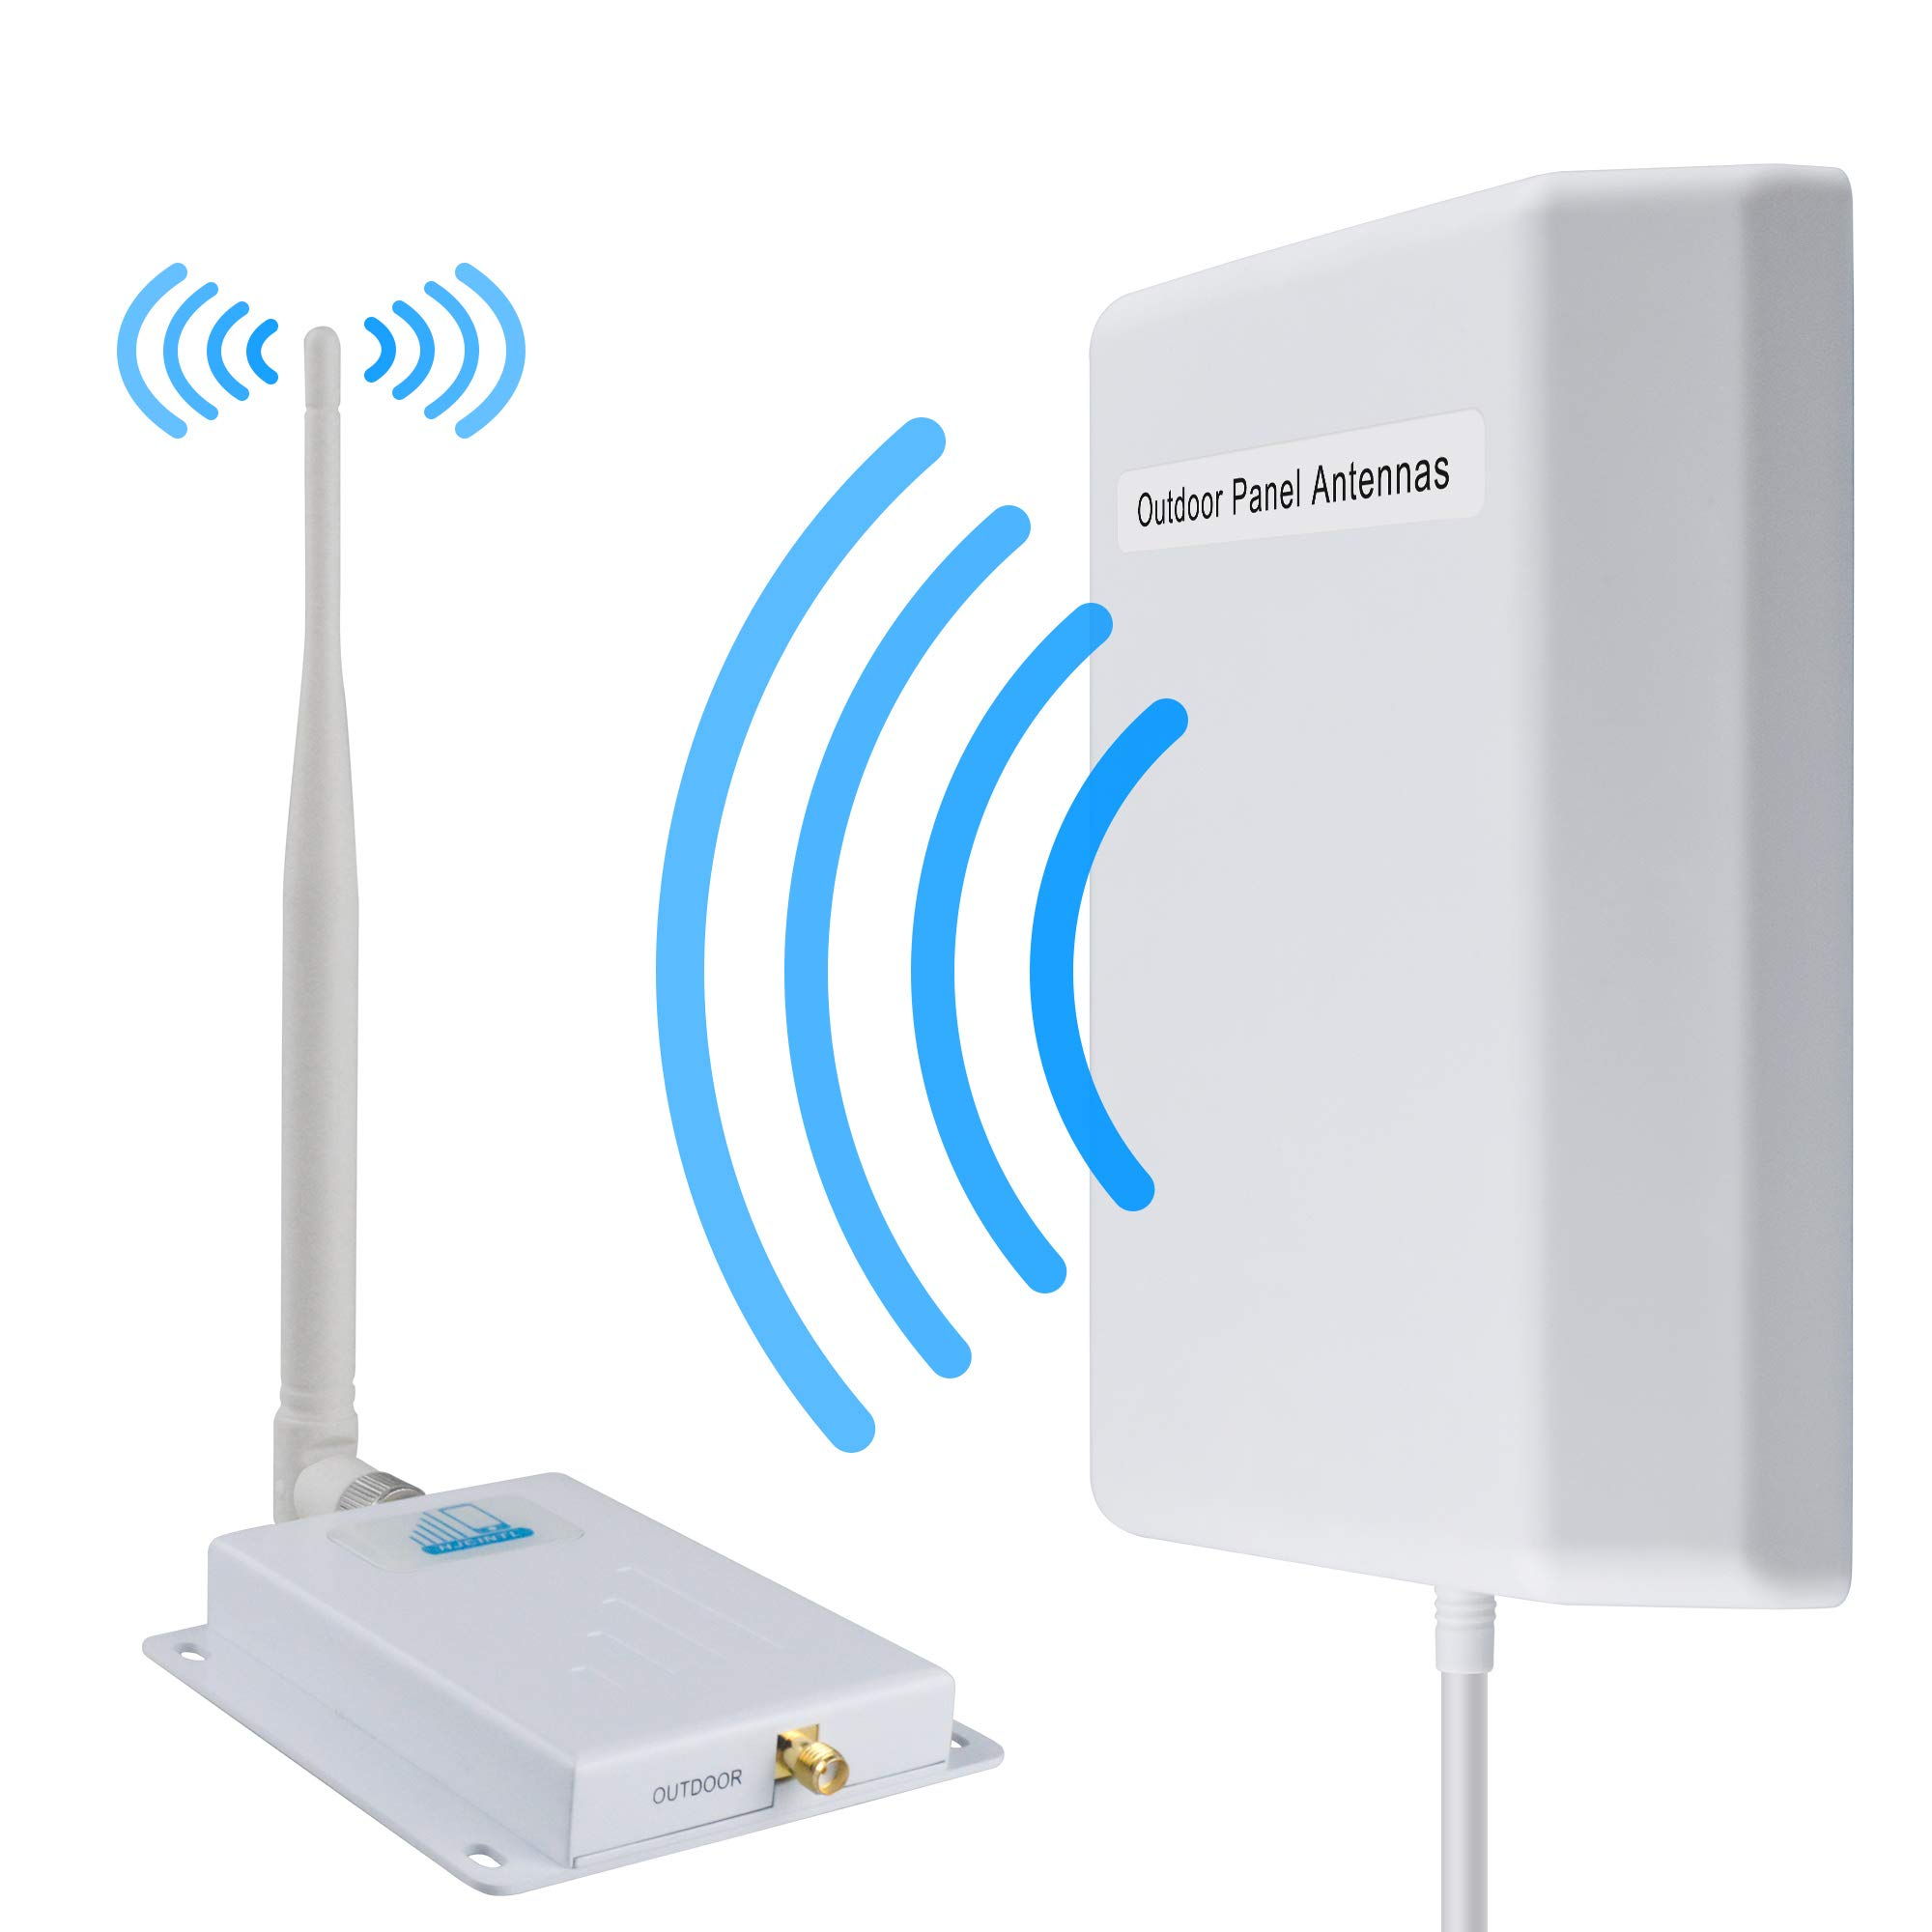 Signal Boosters ATT 4G LTE Cell Phone Signal Boosters HJCINTL FDD Band 12/17 700Mhz Mobile Phone Signal Repeater Booster Kits for Home, Office